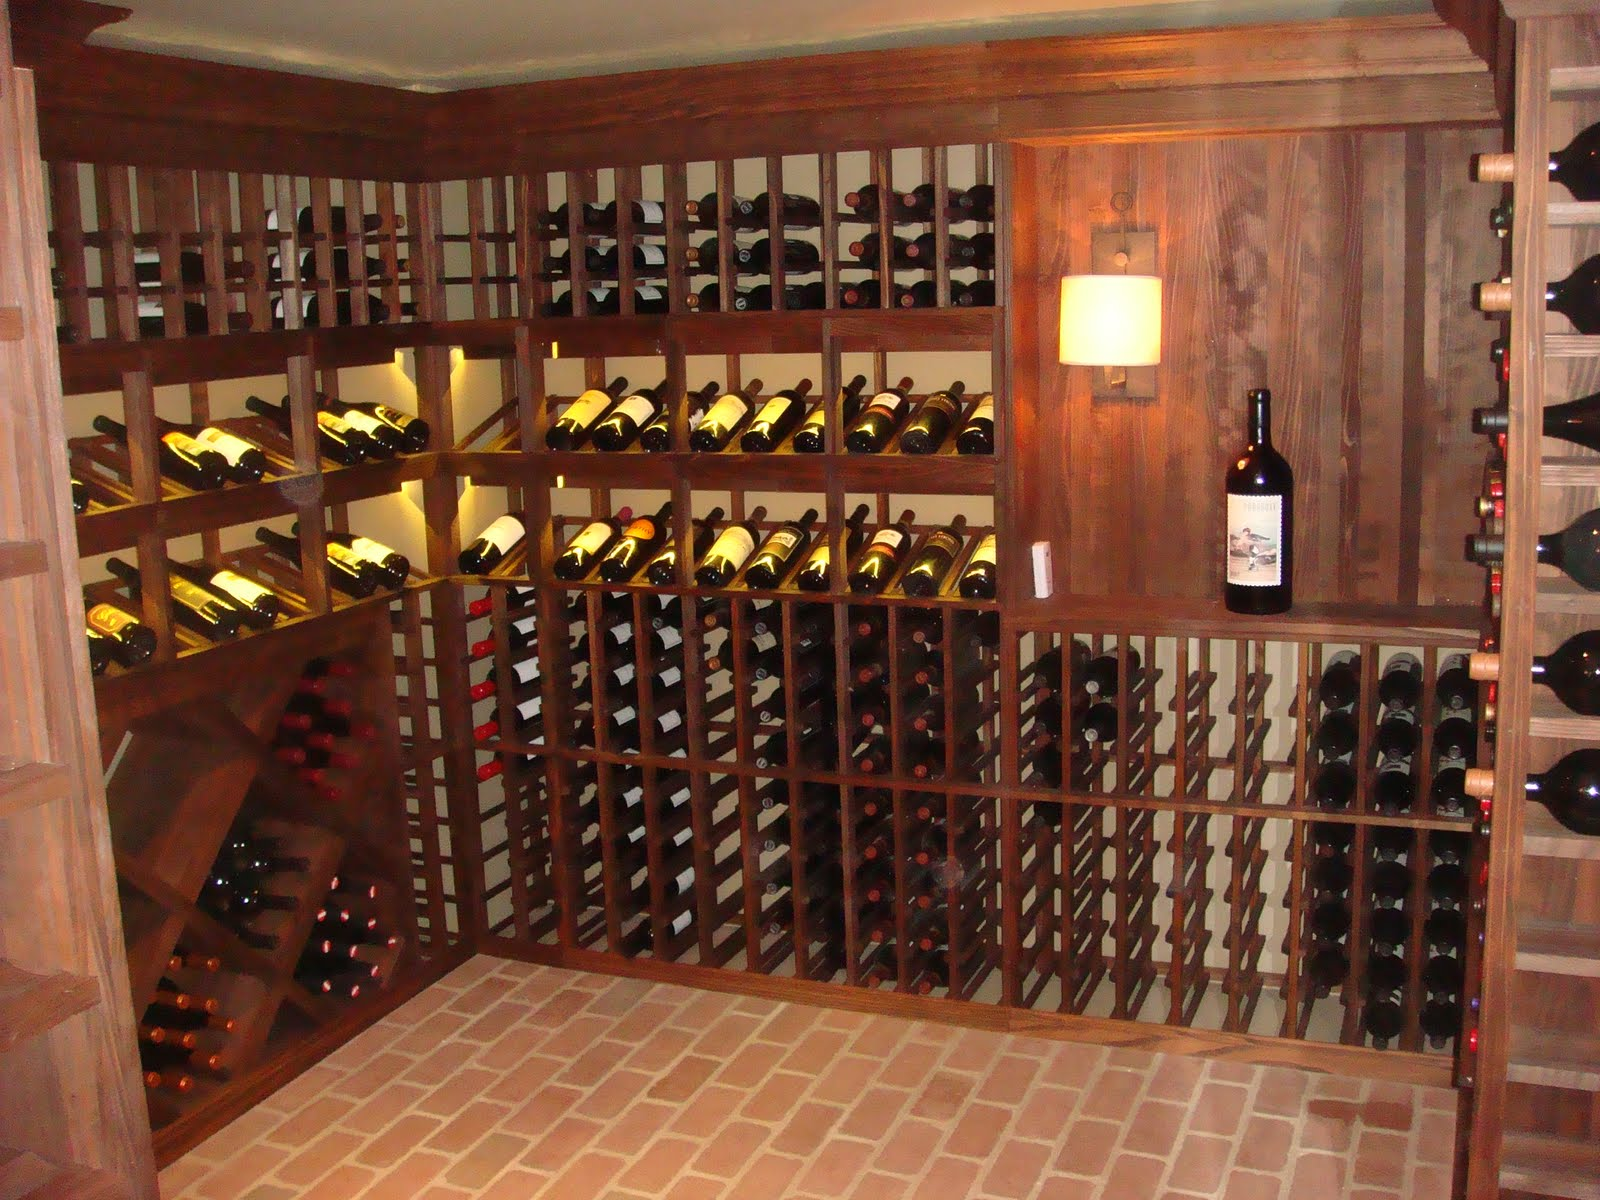 Charlotte home remodeling company wine cellars basement for Home wine cellar design ideas